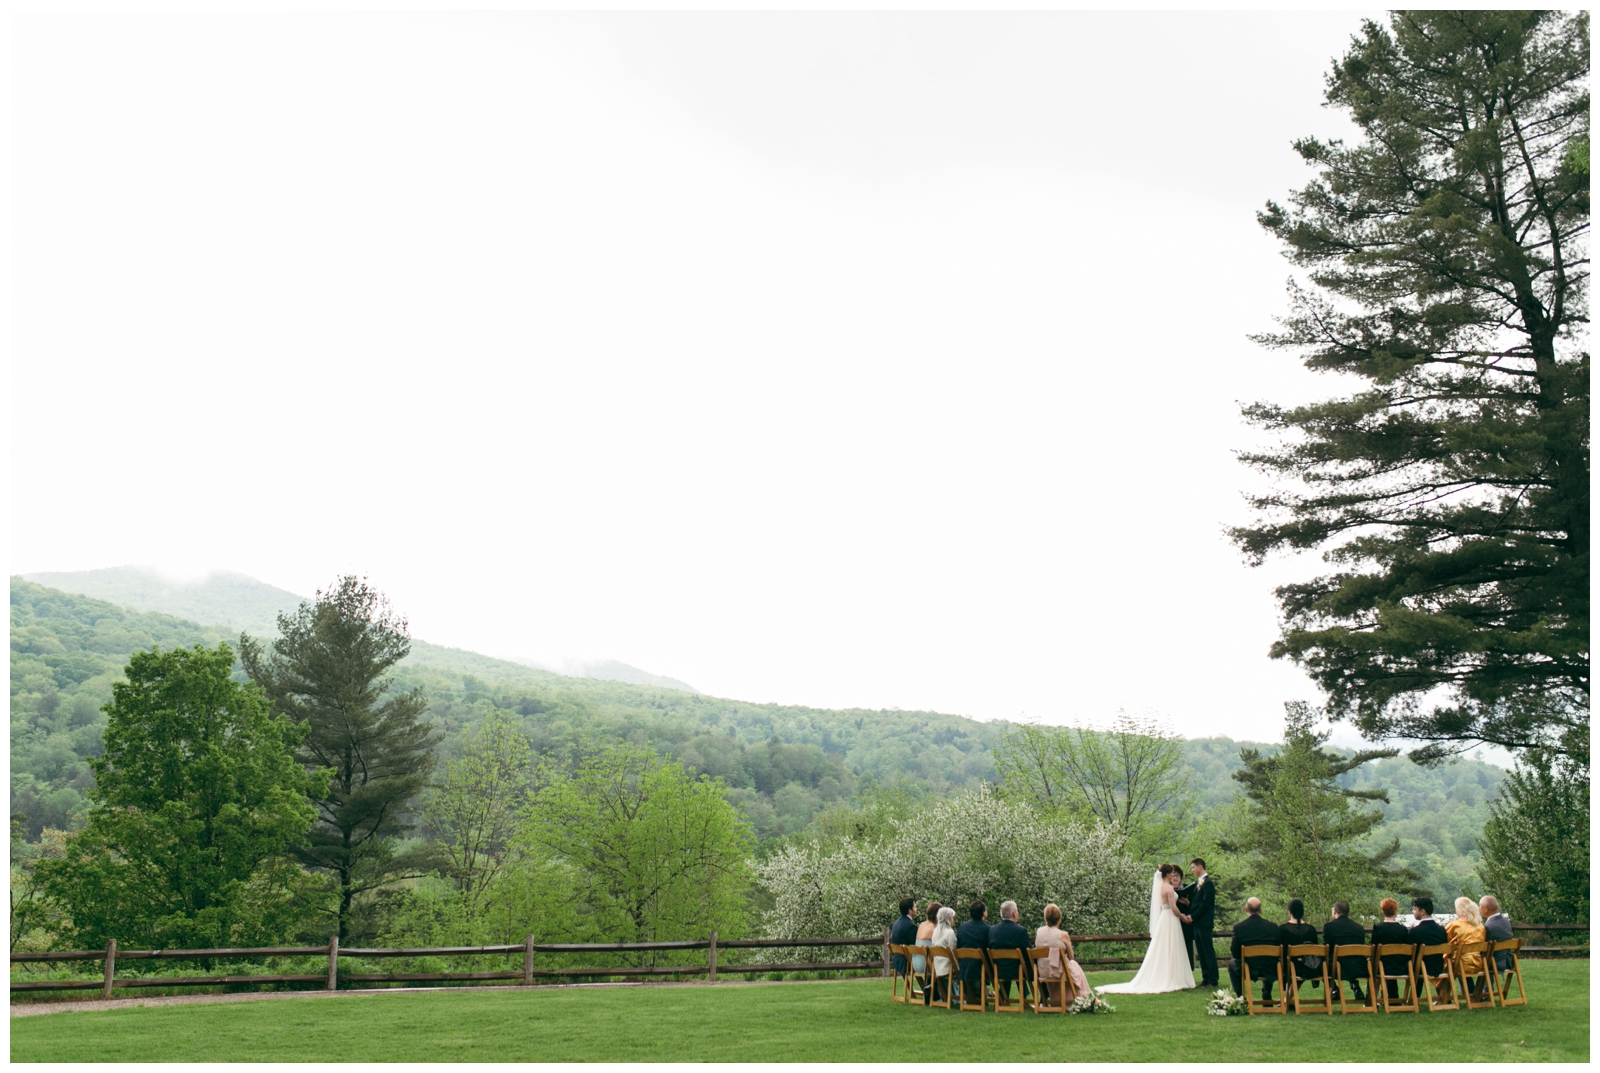 Vermont-Elopement-Topnotch-Stowe-Wedding-Bailey-Q-Photo-Boston-Wedding-Photographer-042.jpg